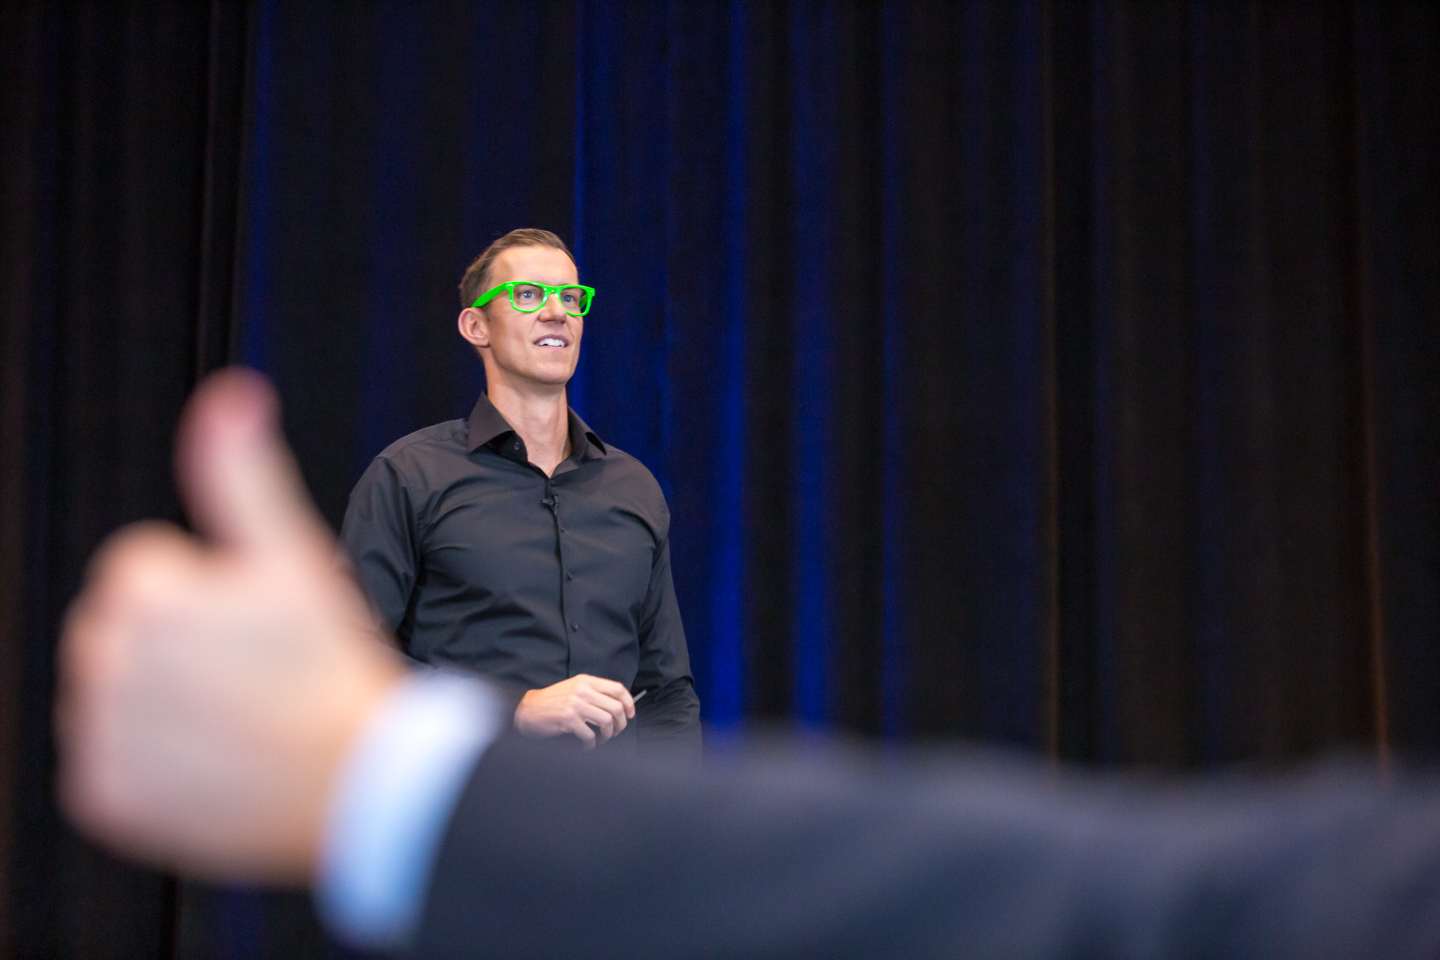 AAPPR-Conference-Expo-Professional-Event-Photography-Photographer-Orlando-eric-green-glasses-13.jpg